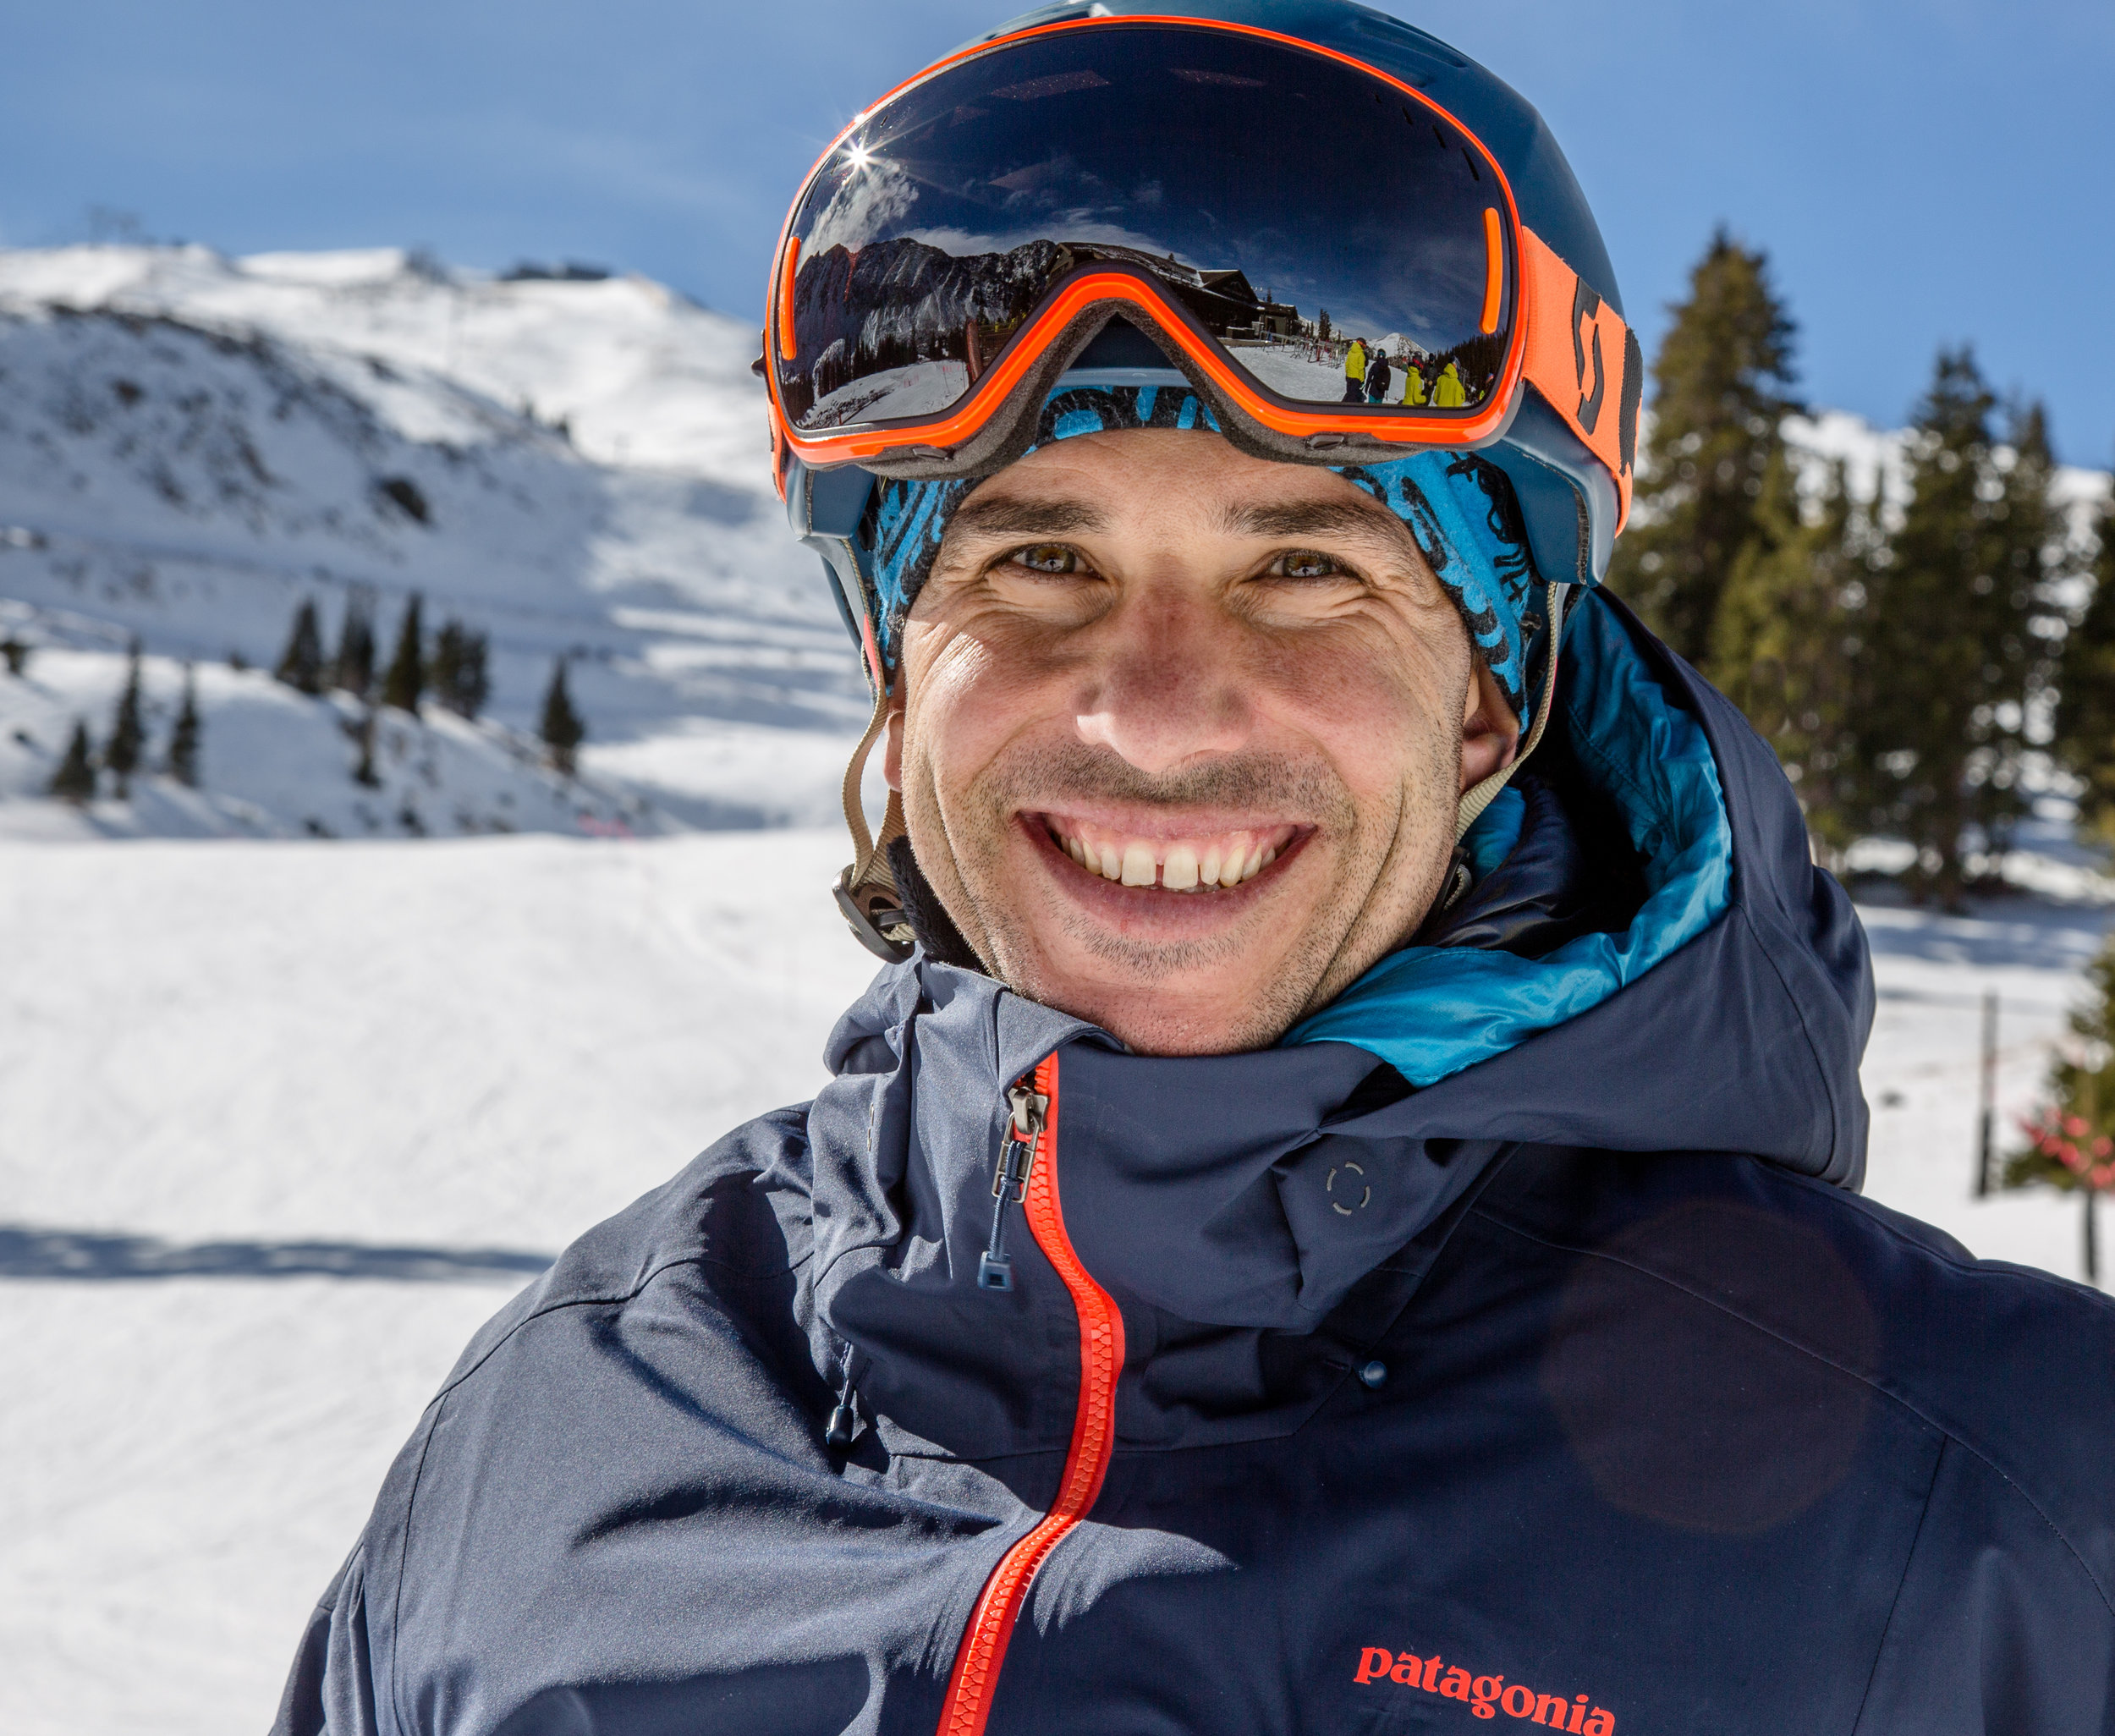 NICK HERRIN,  CEO, PROFESSIONAL SKI INSTRUCTORS OF AMERICA, AMERICAN ASSOCIATION OF SNOWBOARD INSTRUCTORS